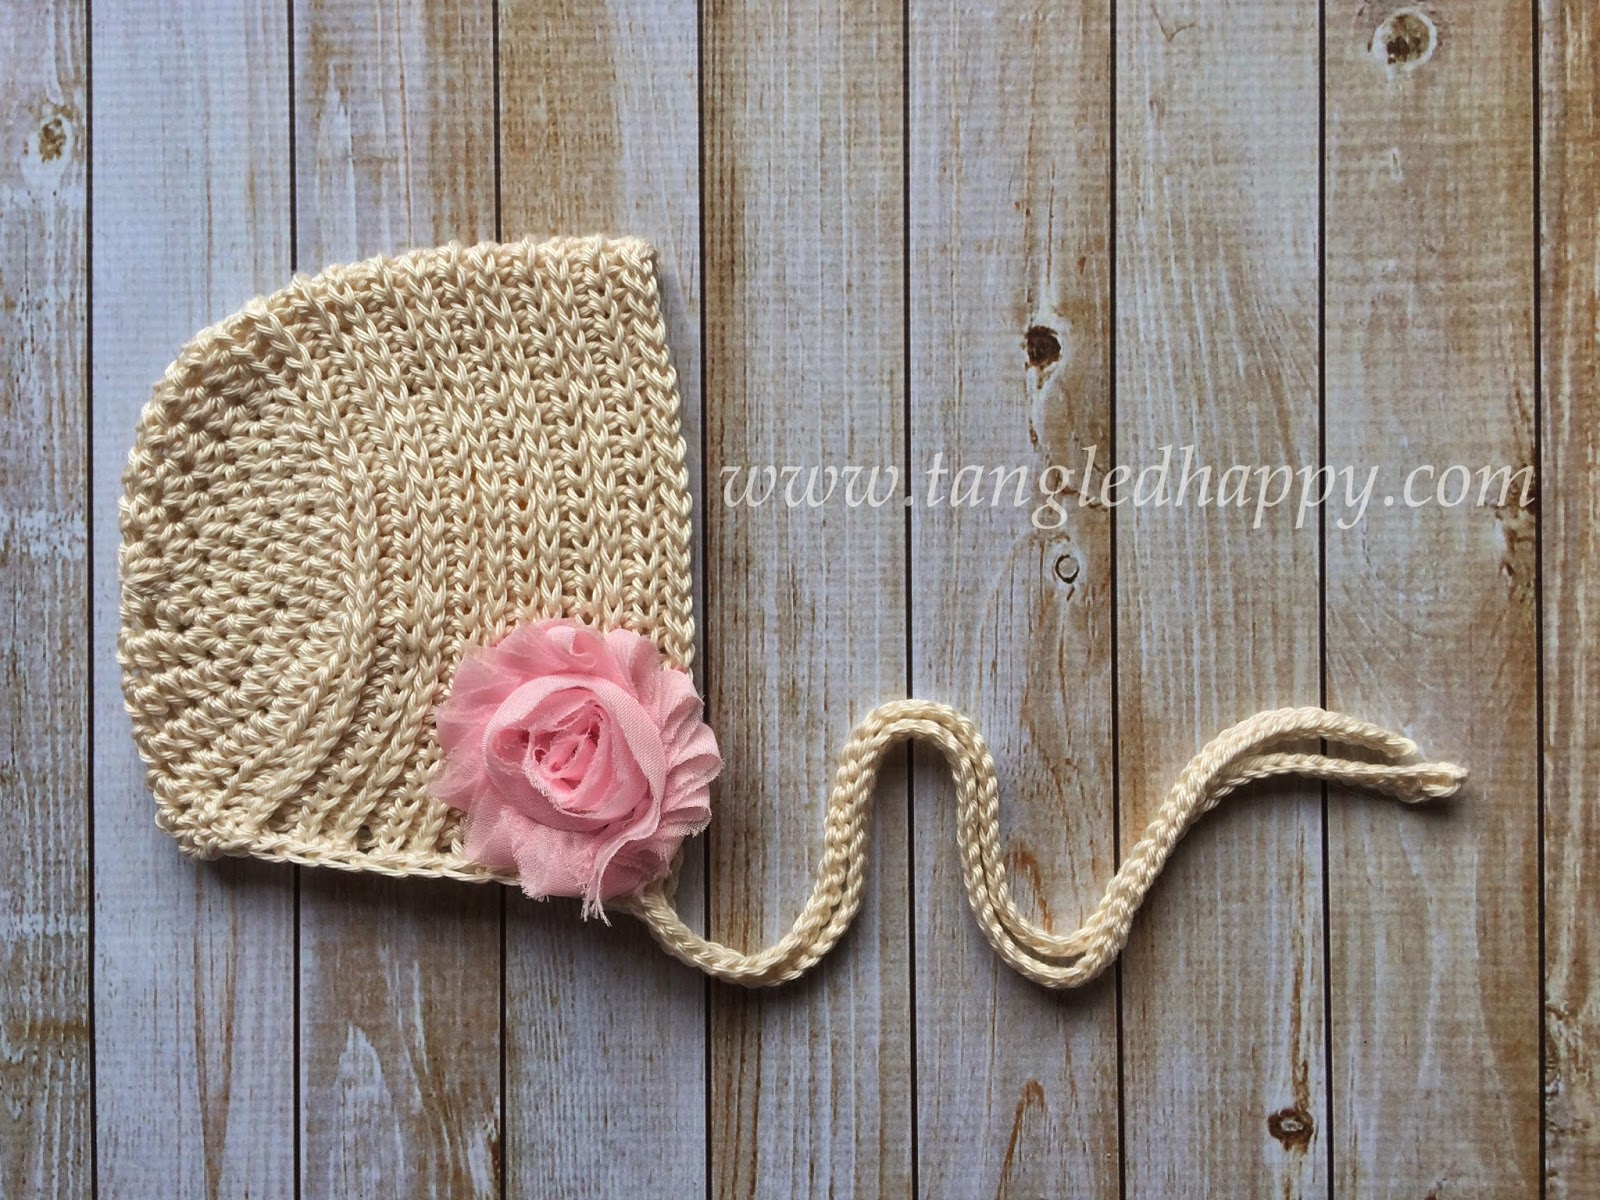 Crochet Baby Bonnet Pattern : tangled happy: Ribbed Baby Bonnet 0-3 Months {Free Crochet ...